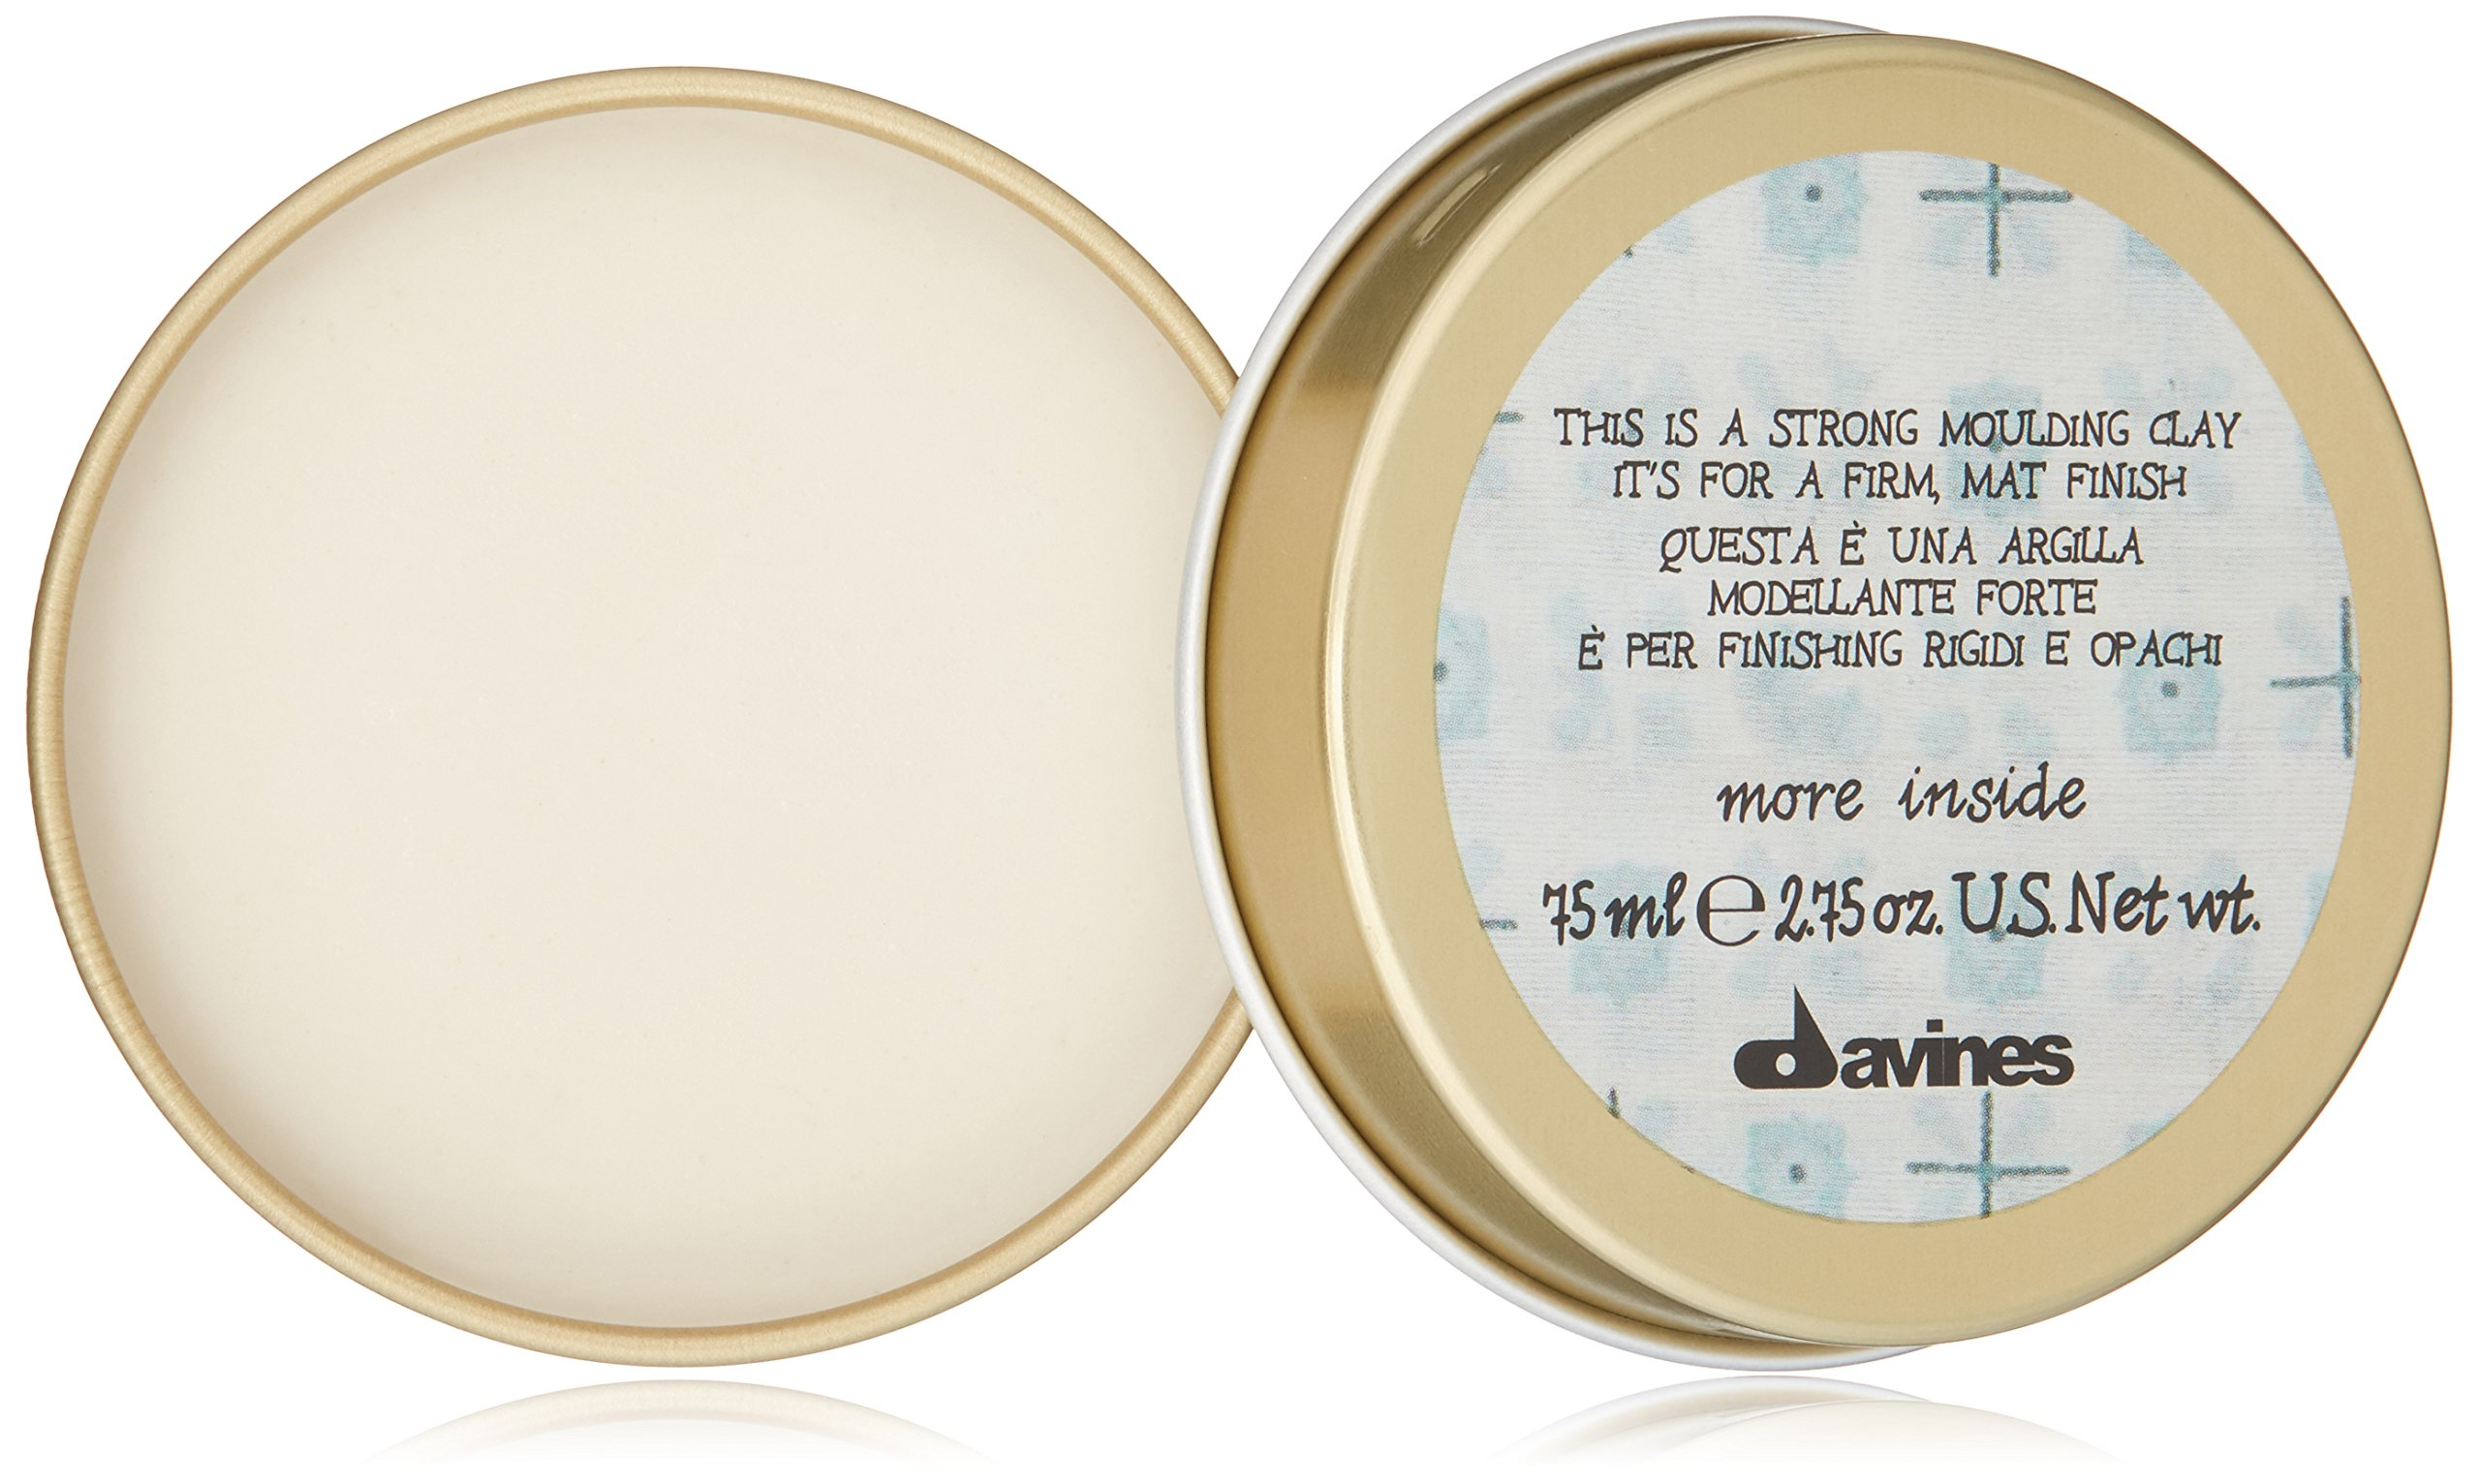 Davines This is A Strong Moulding Clay, 2.75 oz. by Davines